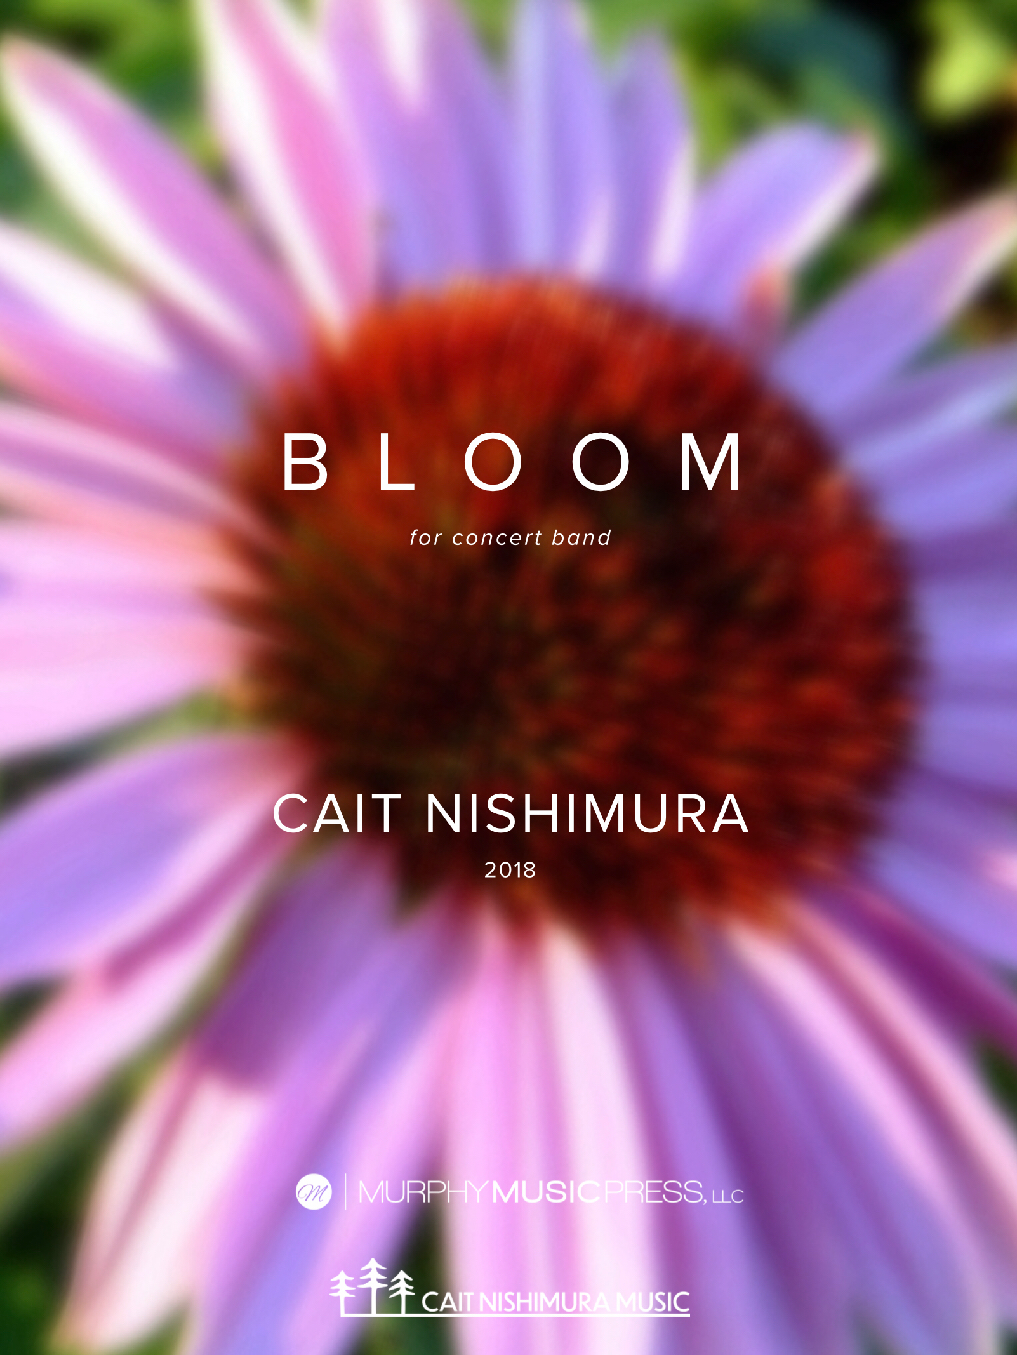 Bloom by Cait Nishimura